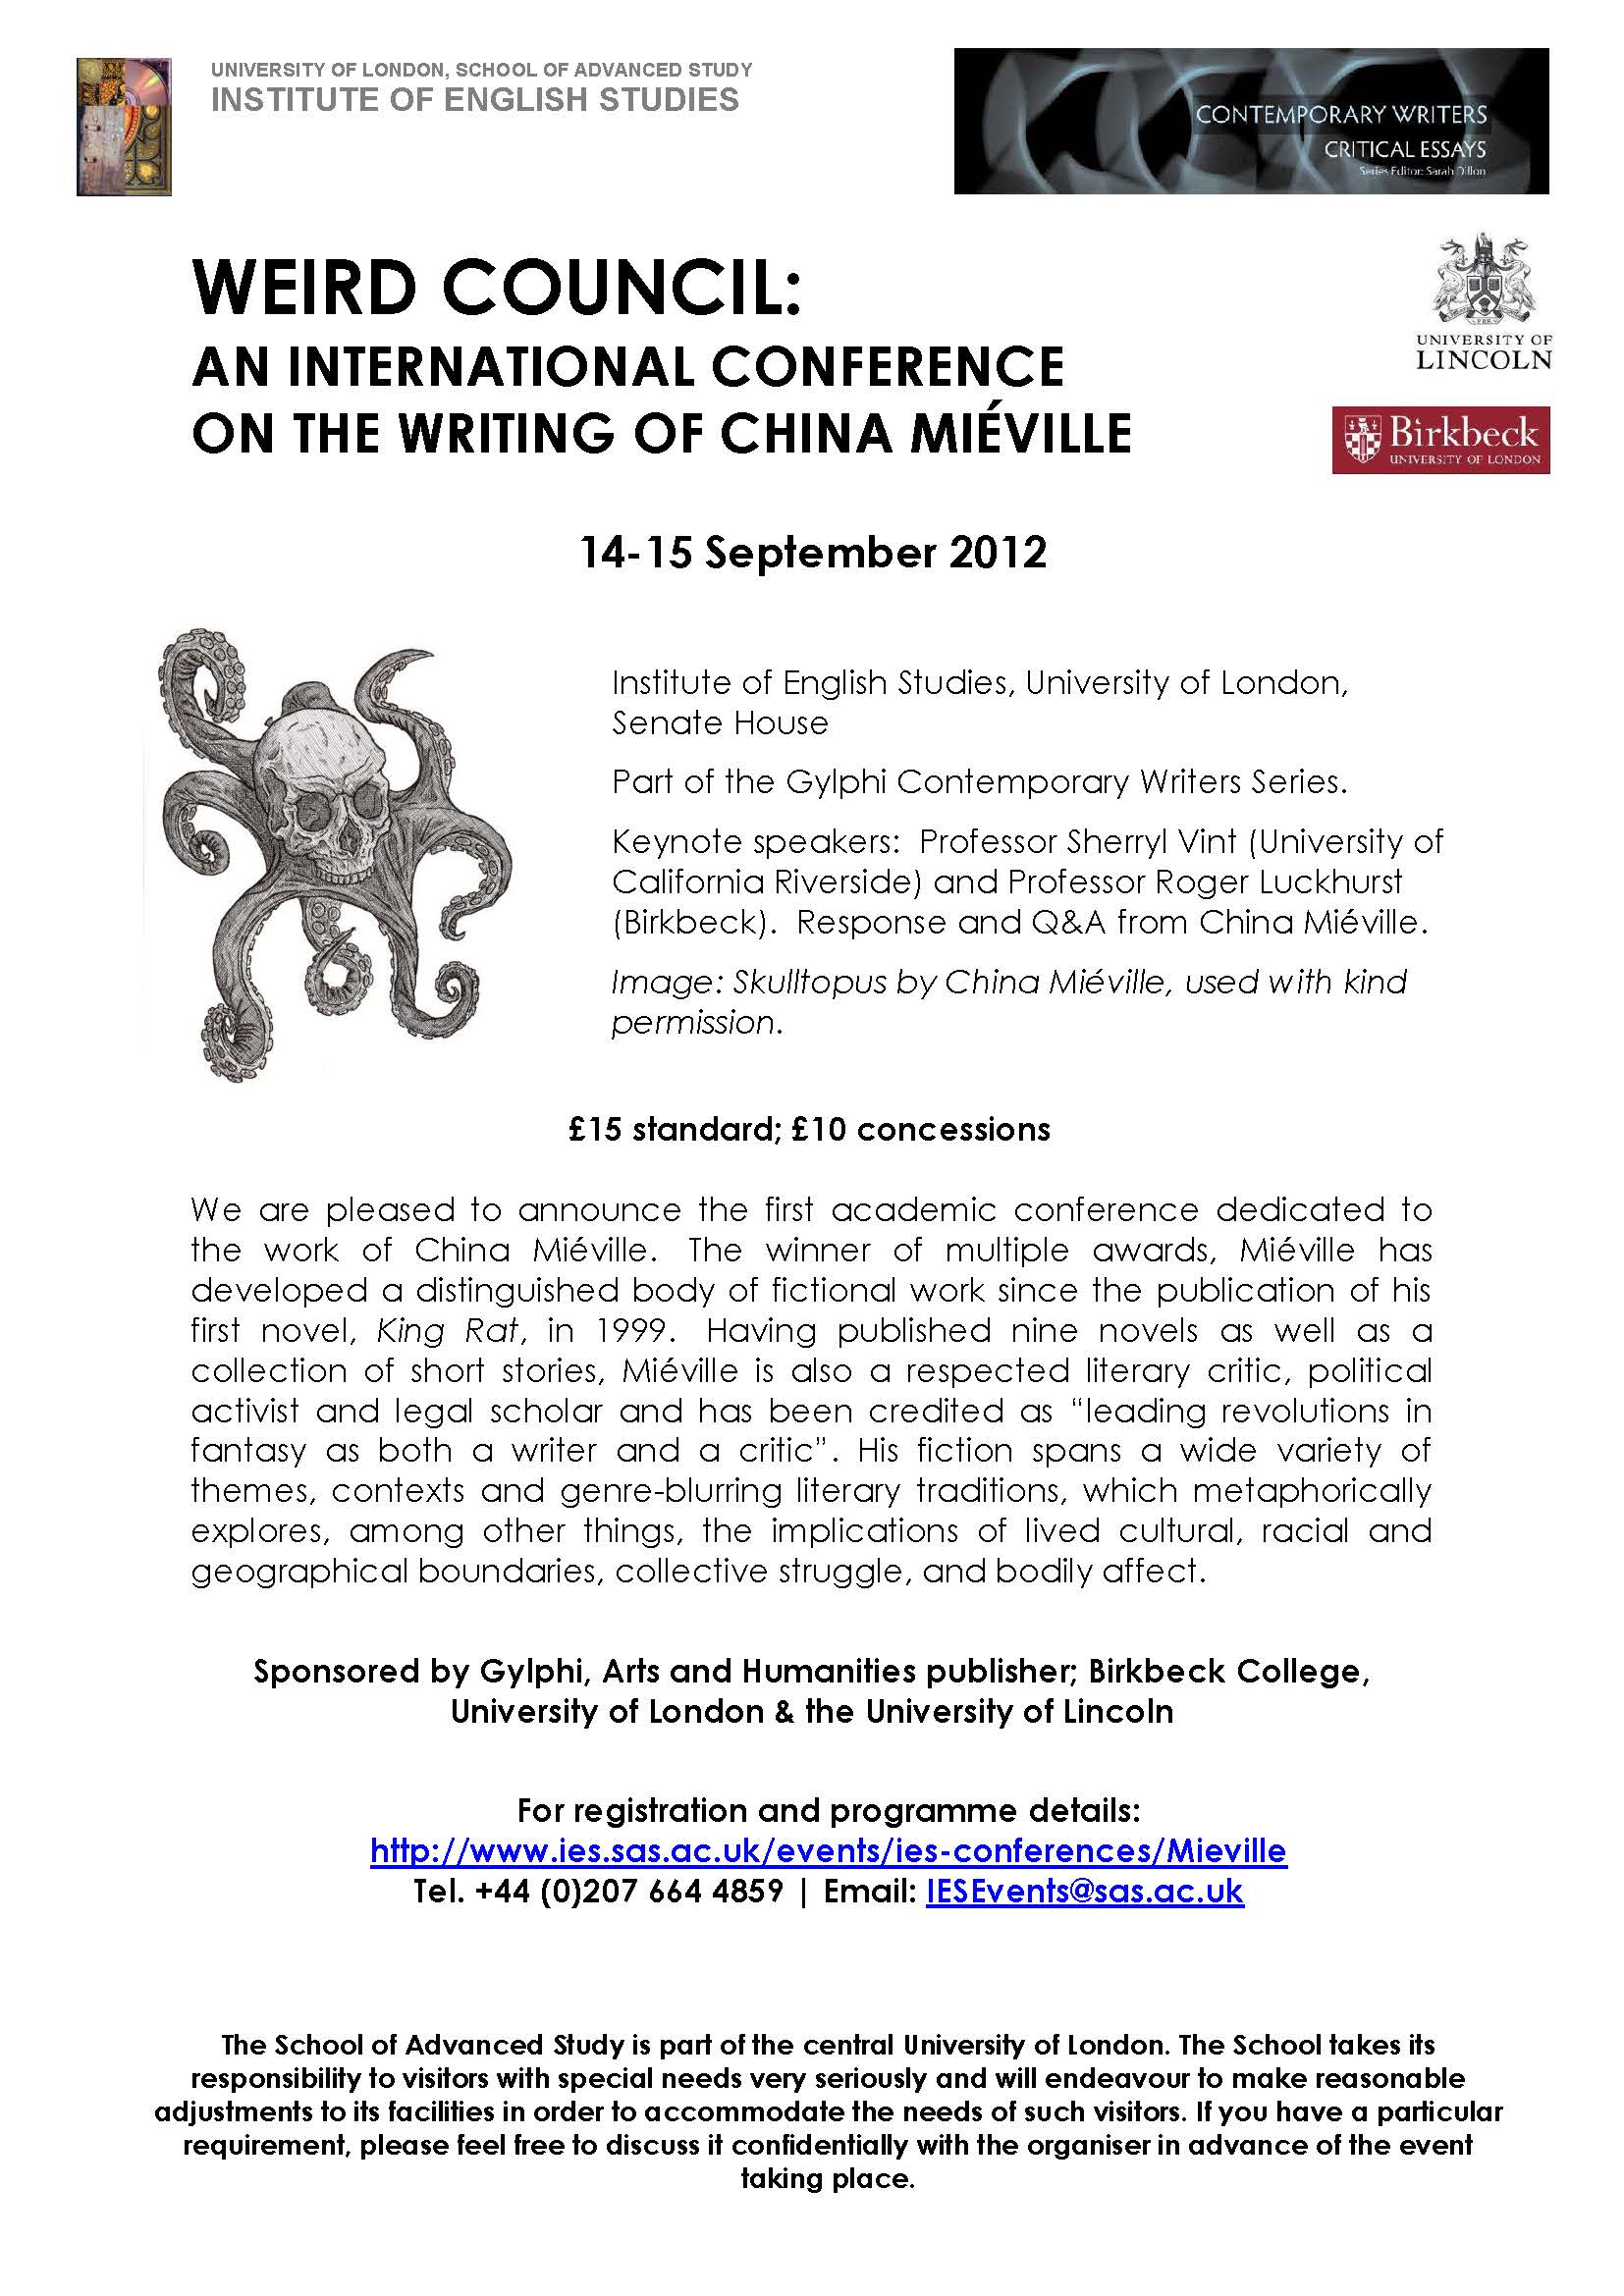 Weird Council: An international conference on the writing of China Miéville